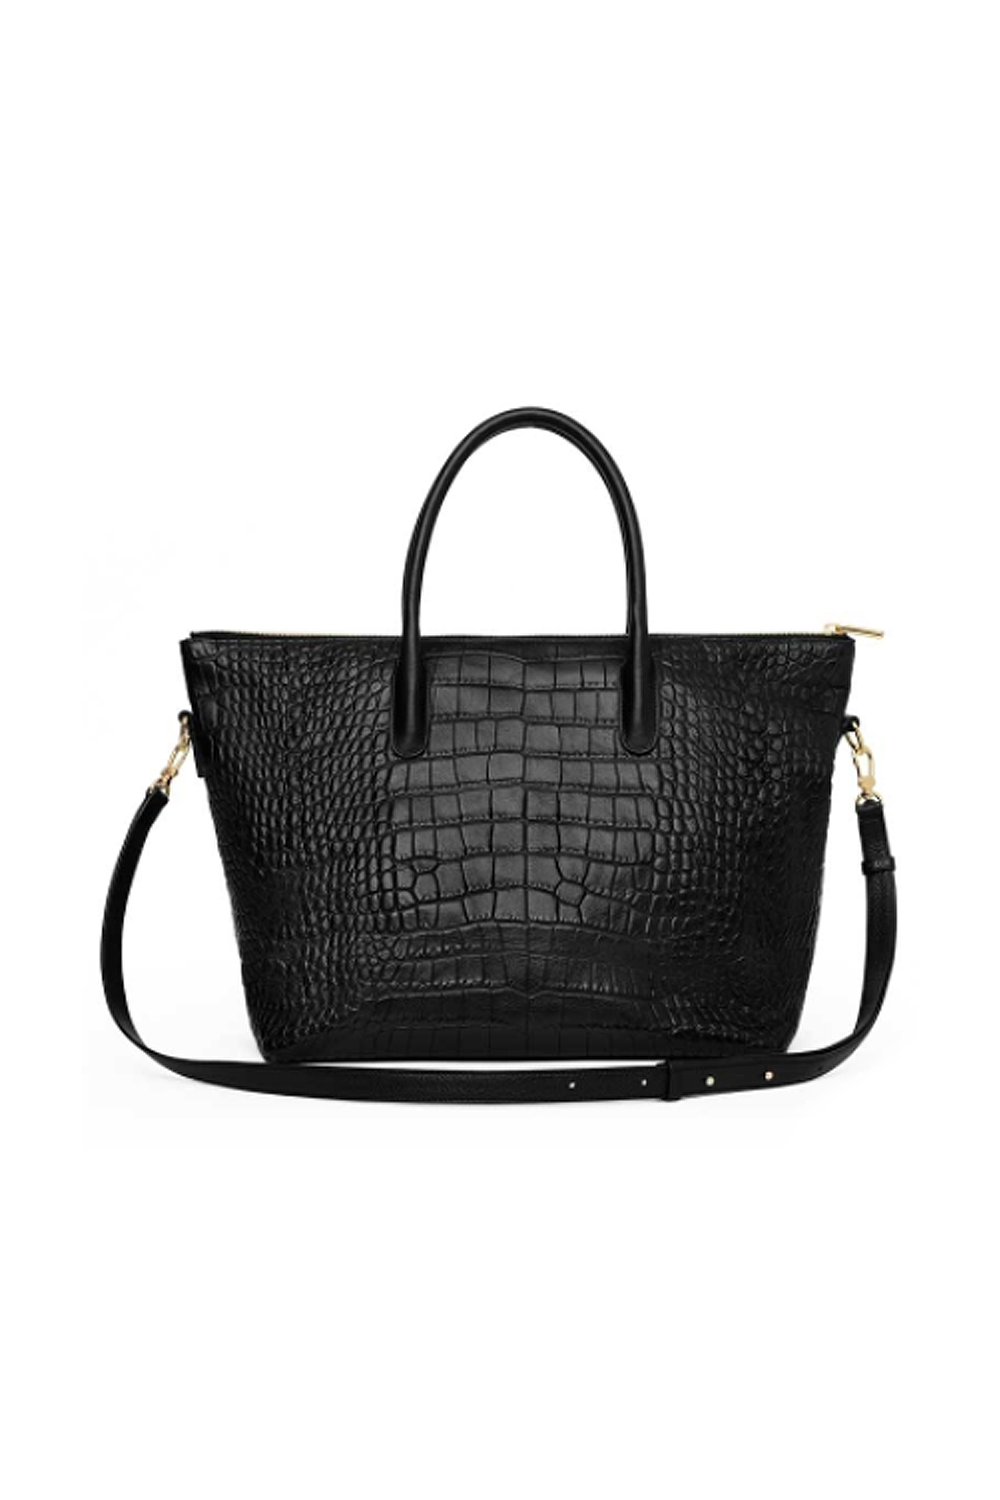 The HBIC Cuyana $275.00 SHOP IT The croc-embossed hand-held satchel of our dreams doubles as a crossbody for when you can't hold your coffee, your phone, and your bag at once. Plus, it has a theft-proof zipper for busy rush hour commutes.